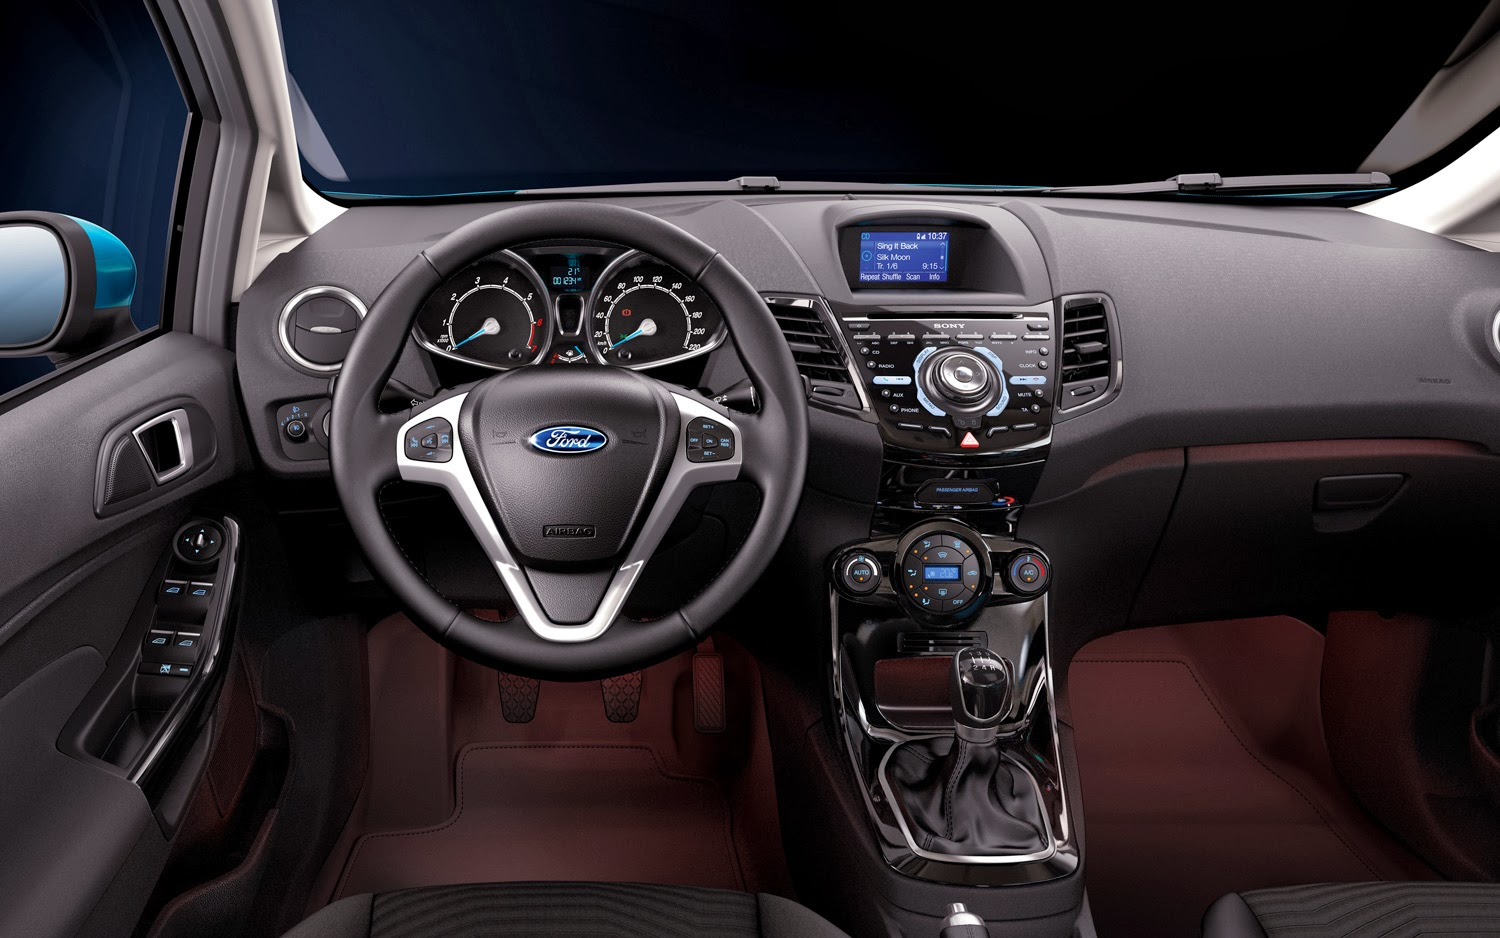 Ford Fiesta Where Is The Inertia Switch On 2015 Nissan Seat Belts Fuel Cut Off Indicator For Slightly Open Door Etc European Styling Tough Build And Superb Interiors Define Fusion